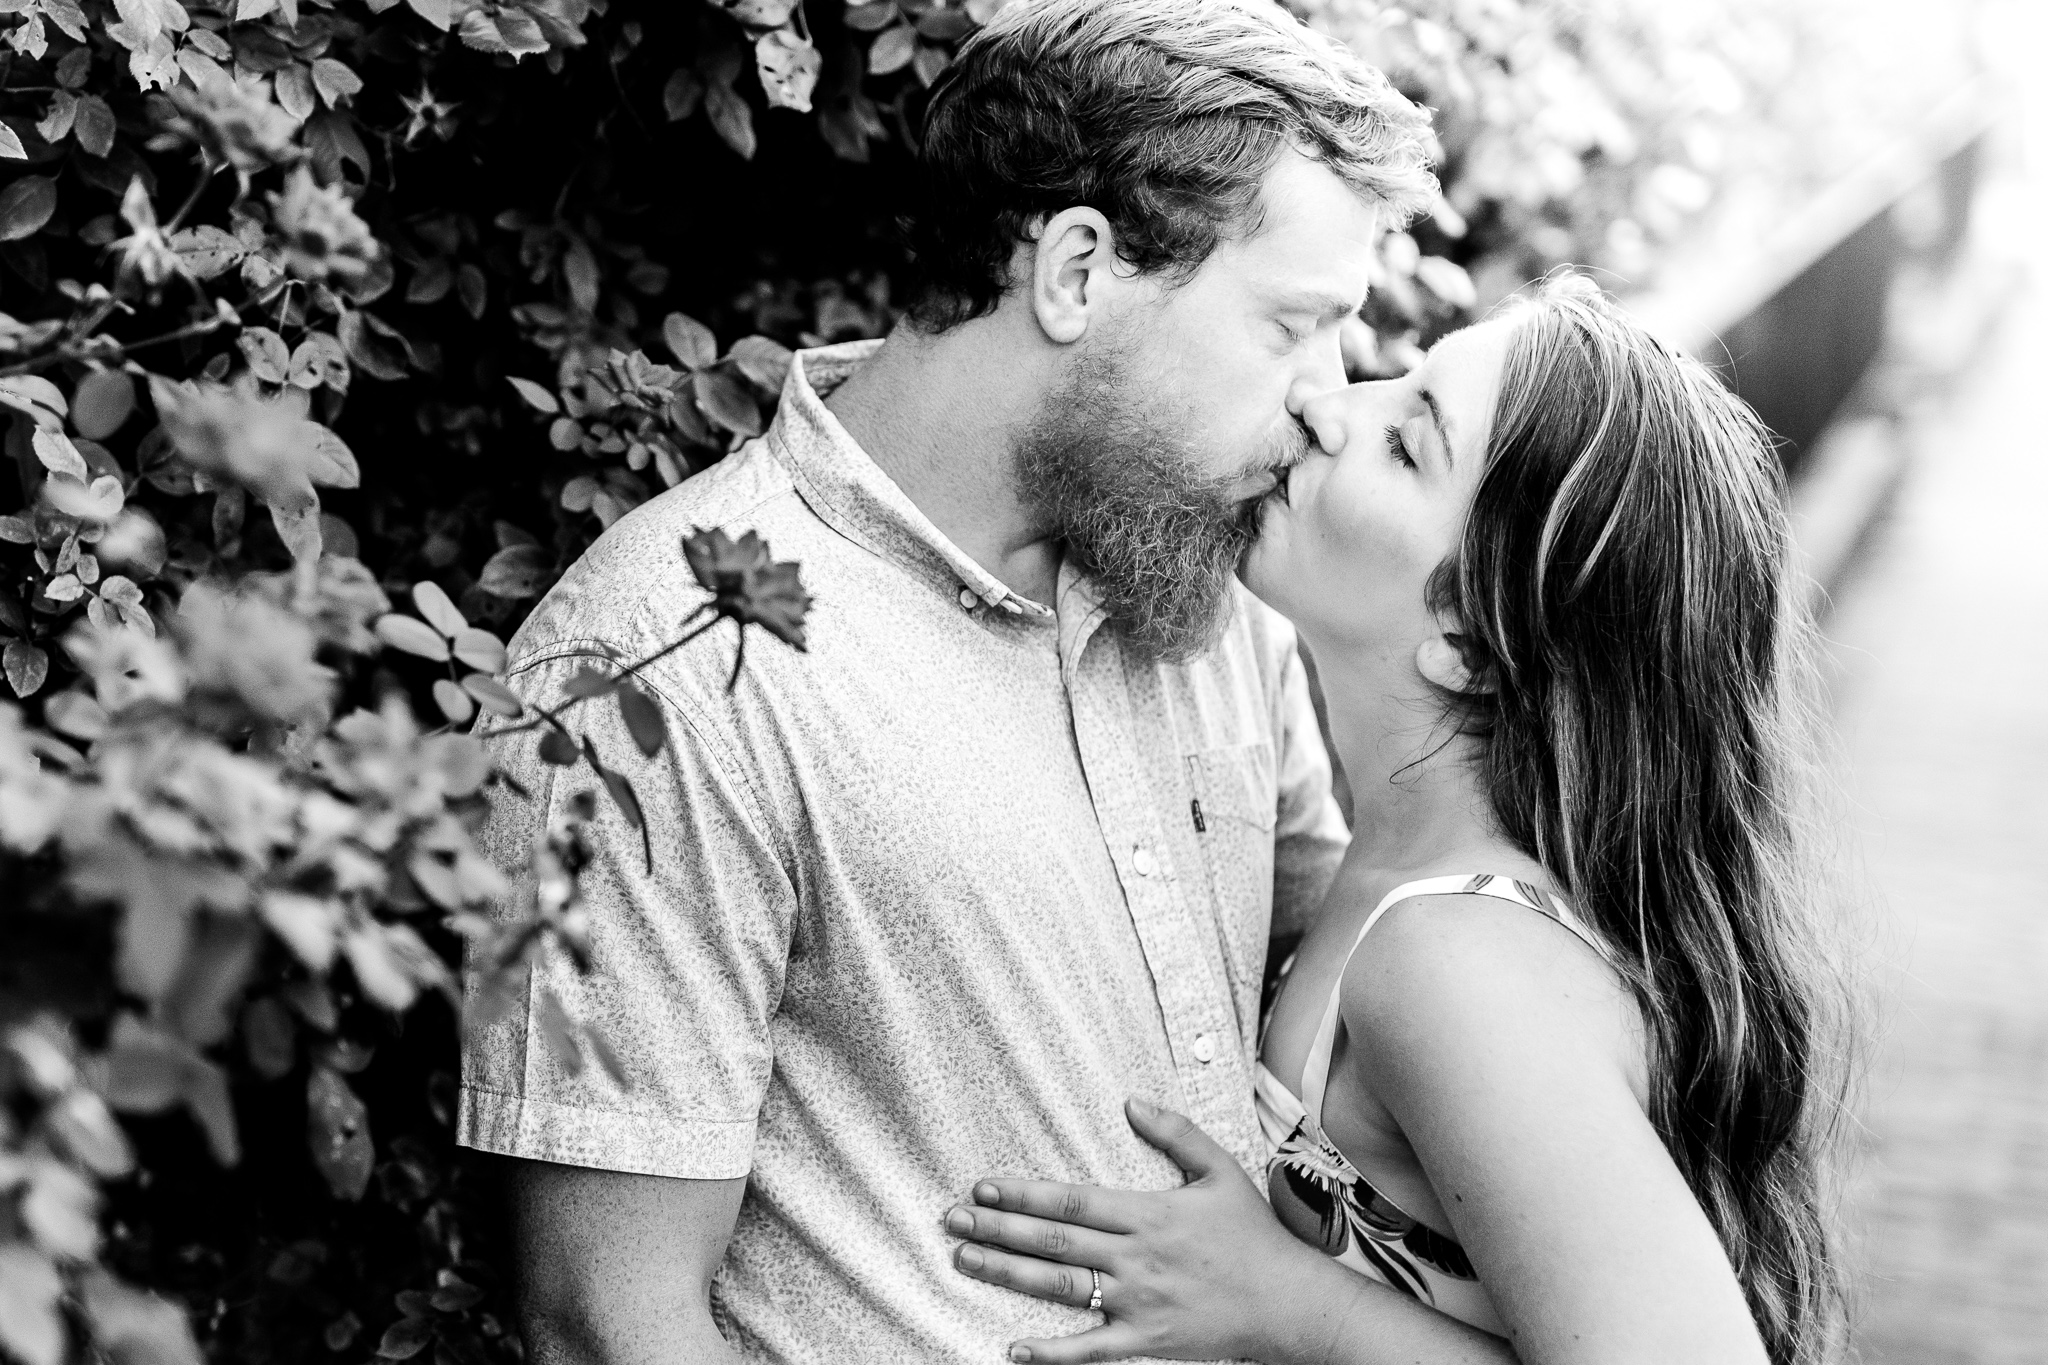 An engaged couple shares a kiss next to a rose bush during their summer sunset engagement session in Historic Occoquan, Northern Virginia